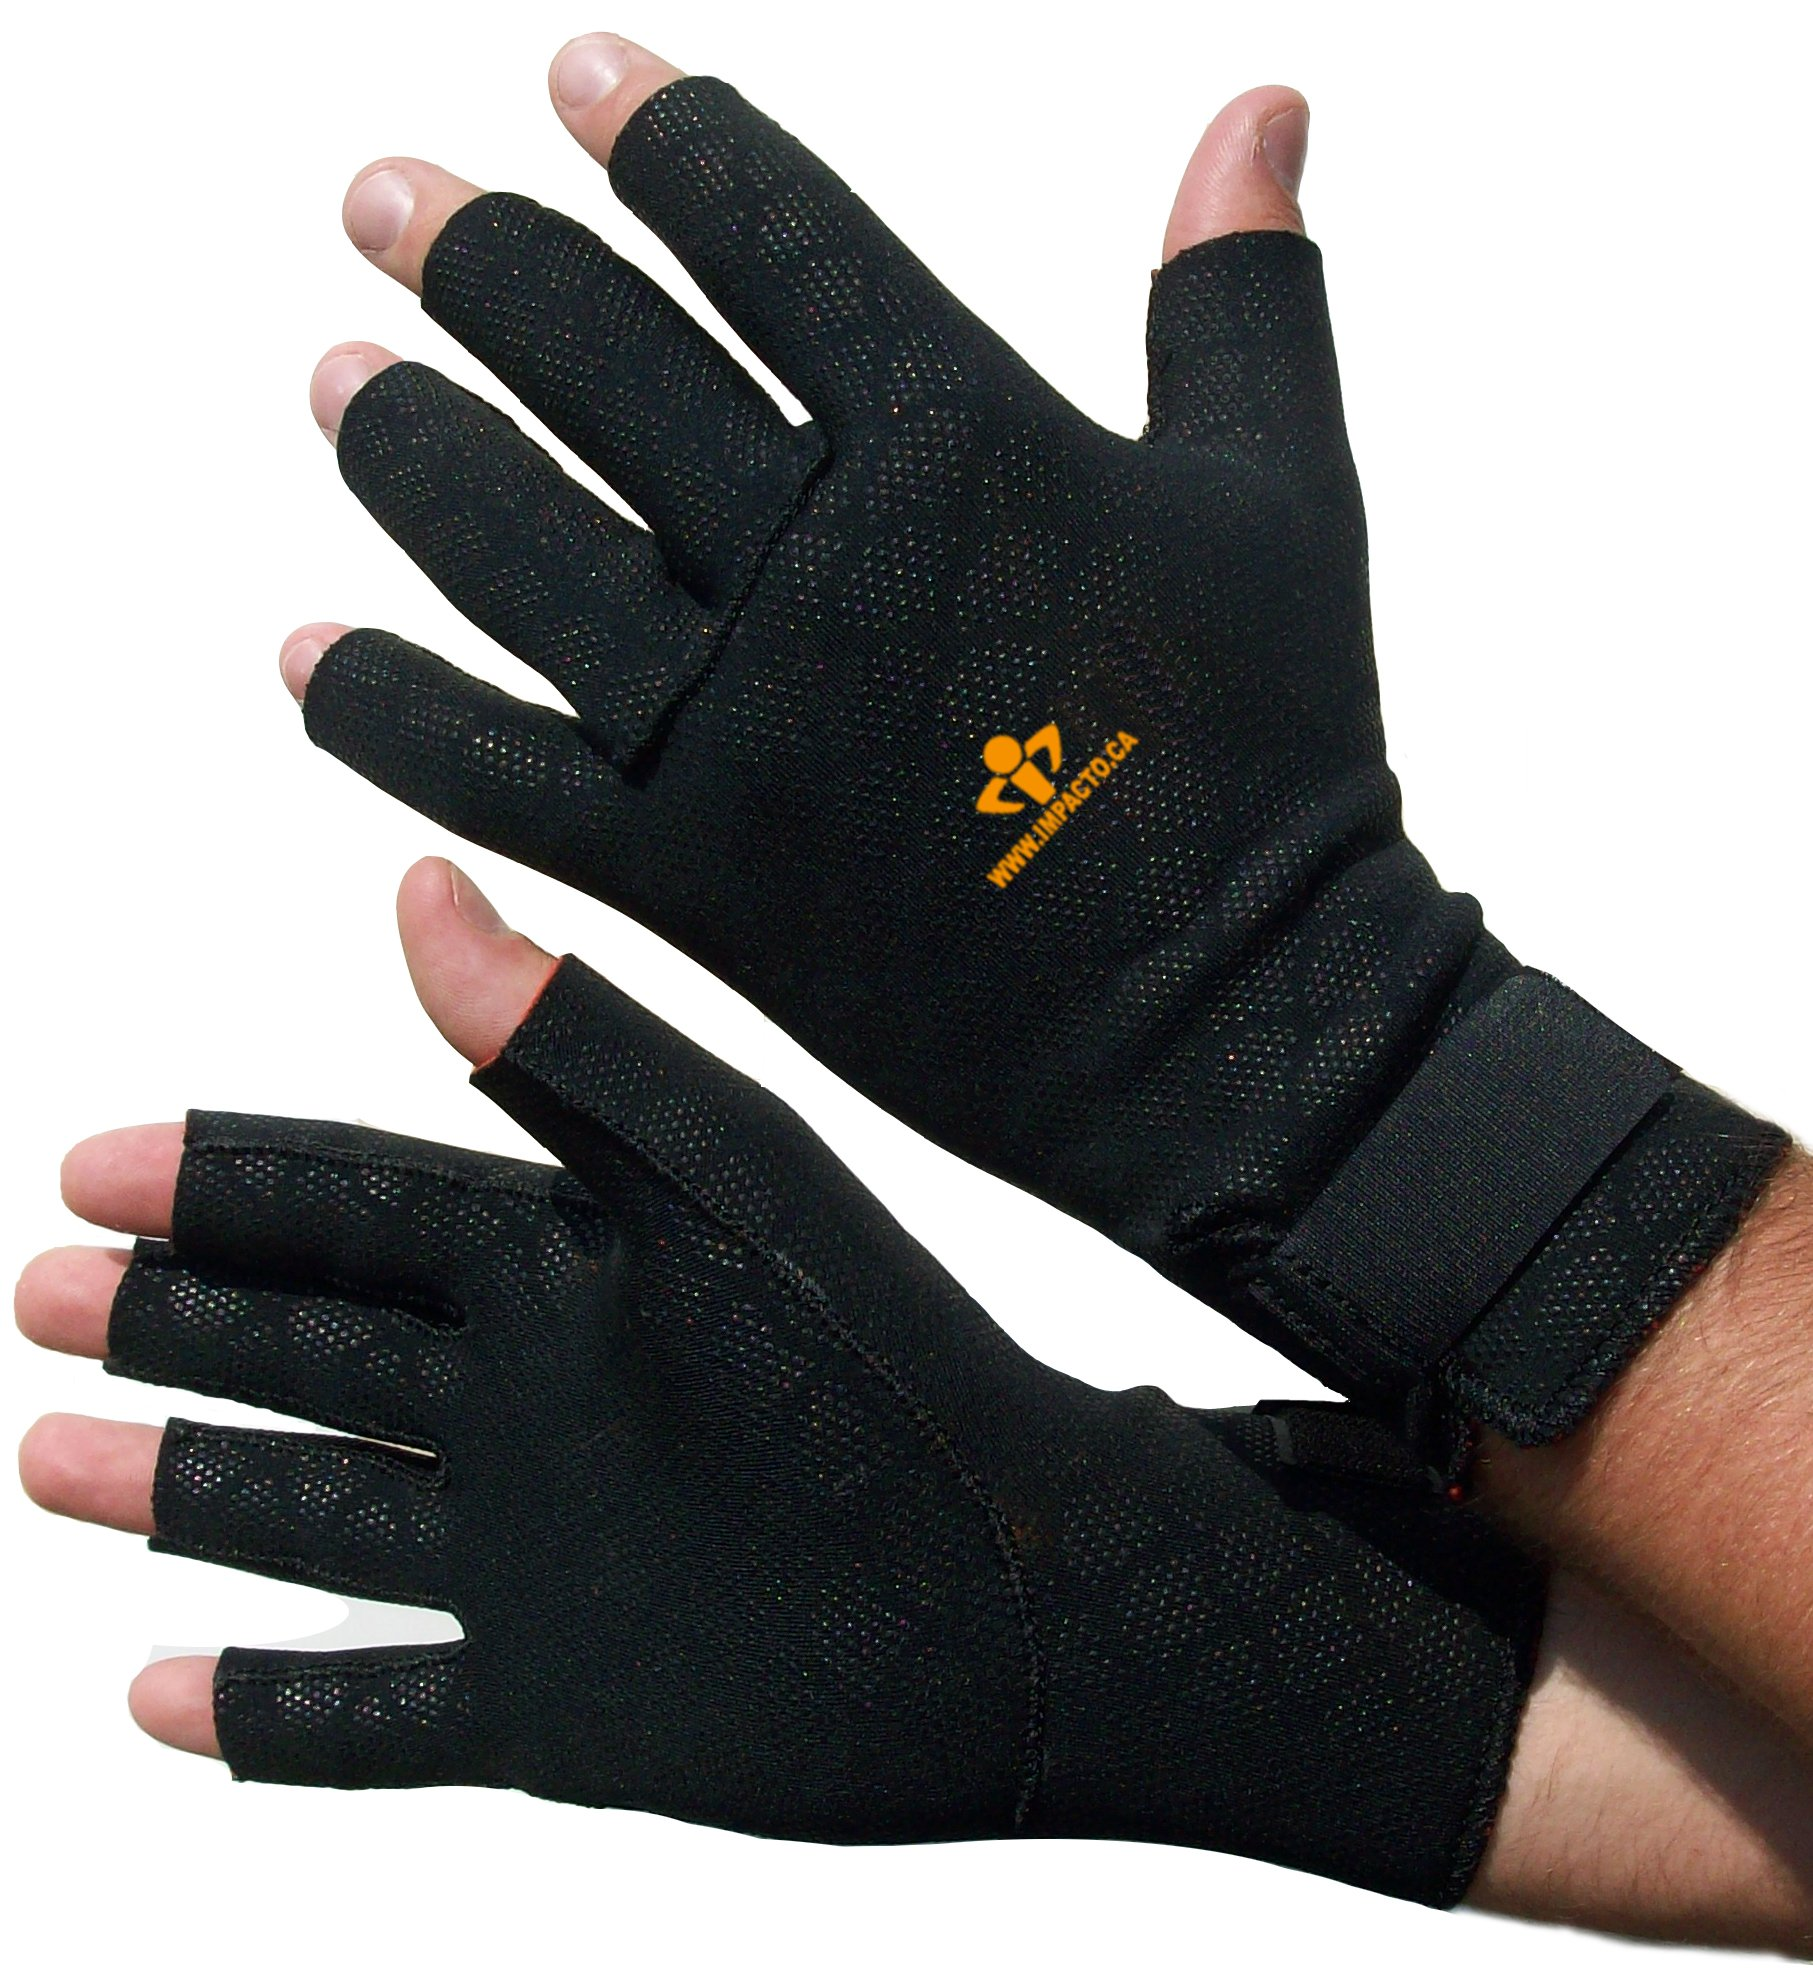 Impacto TS19930 Anti-Fatigue Thermo Glove, Black